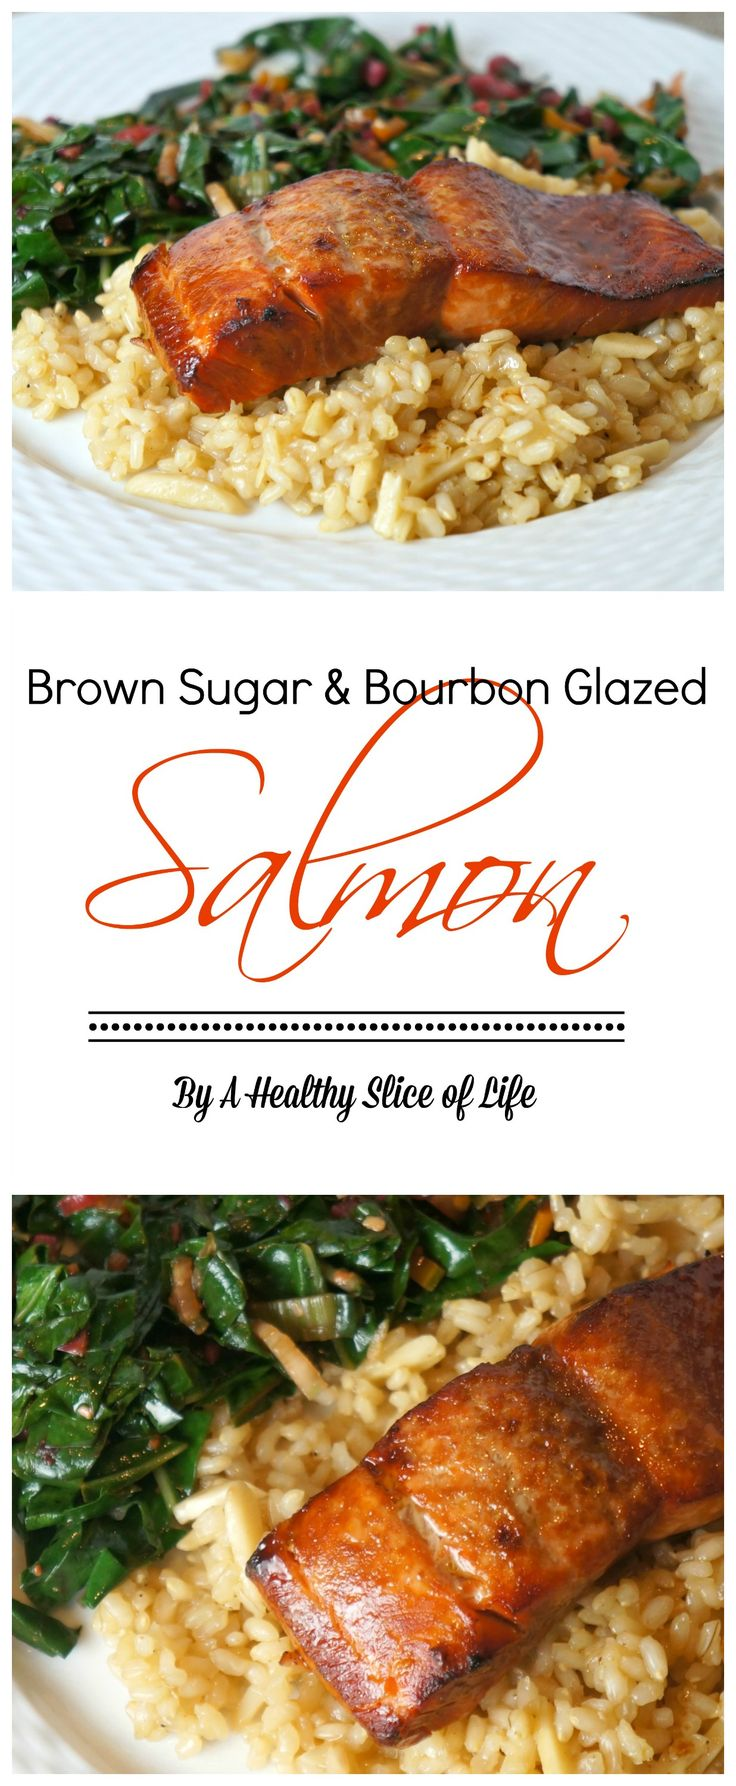 brown sugar and bourbon glazed salmon- quick and foolproof - delicious!